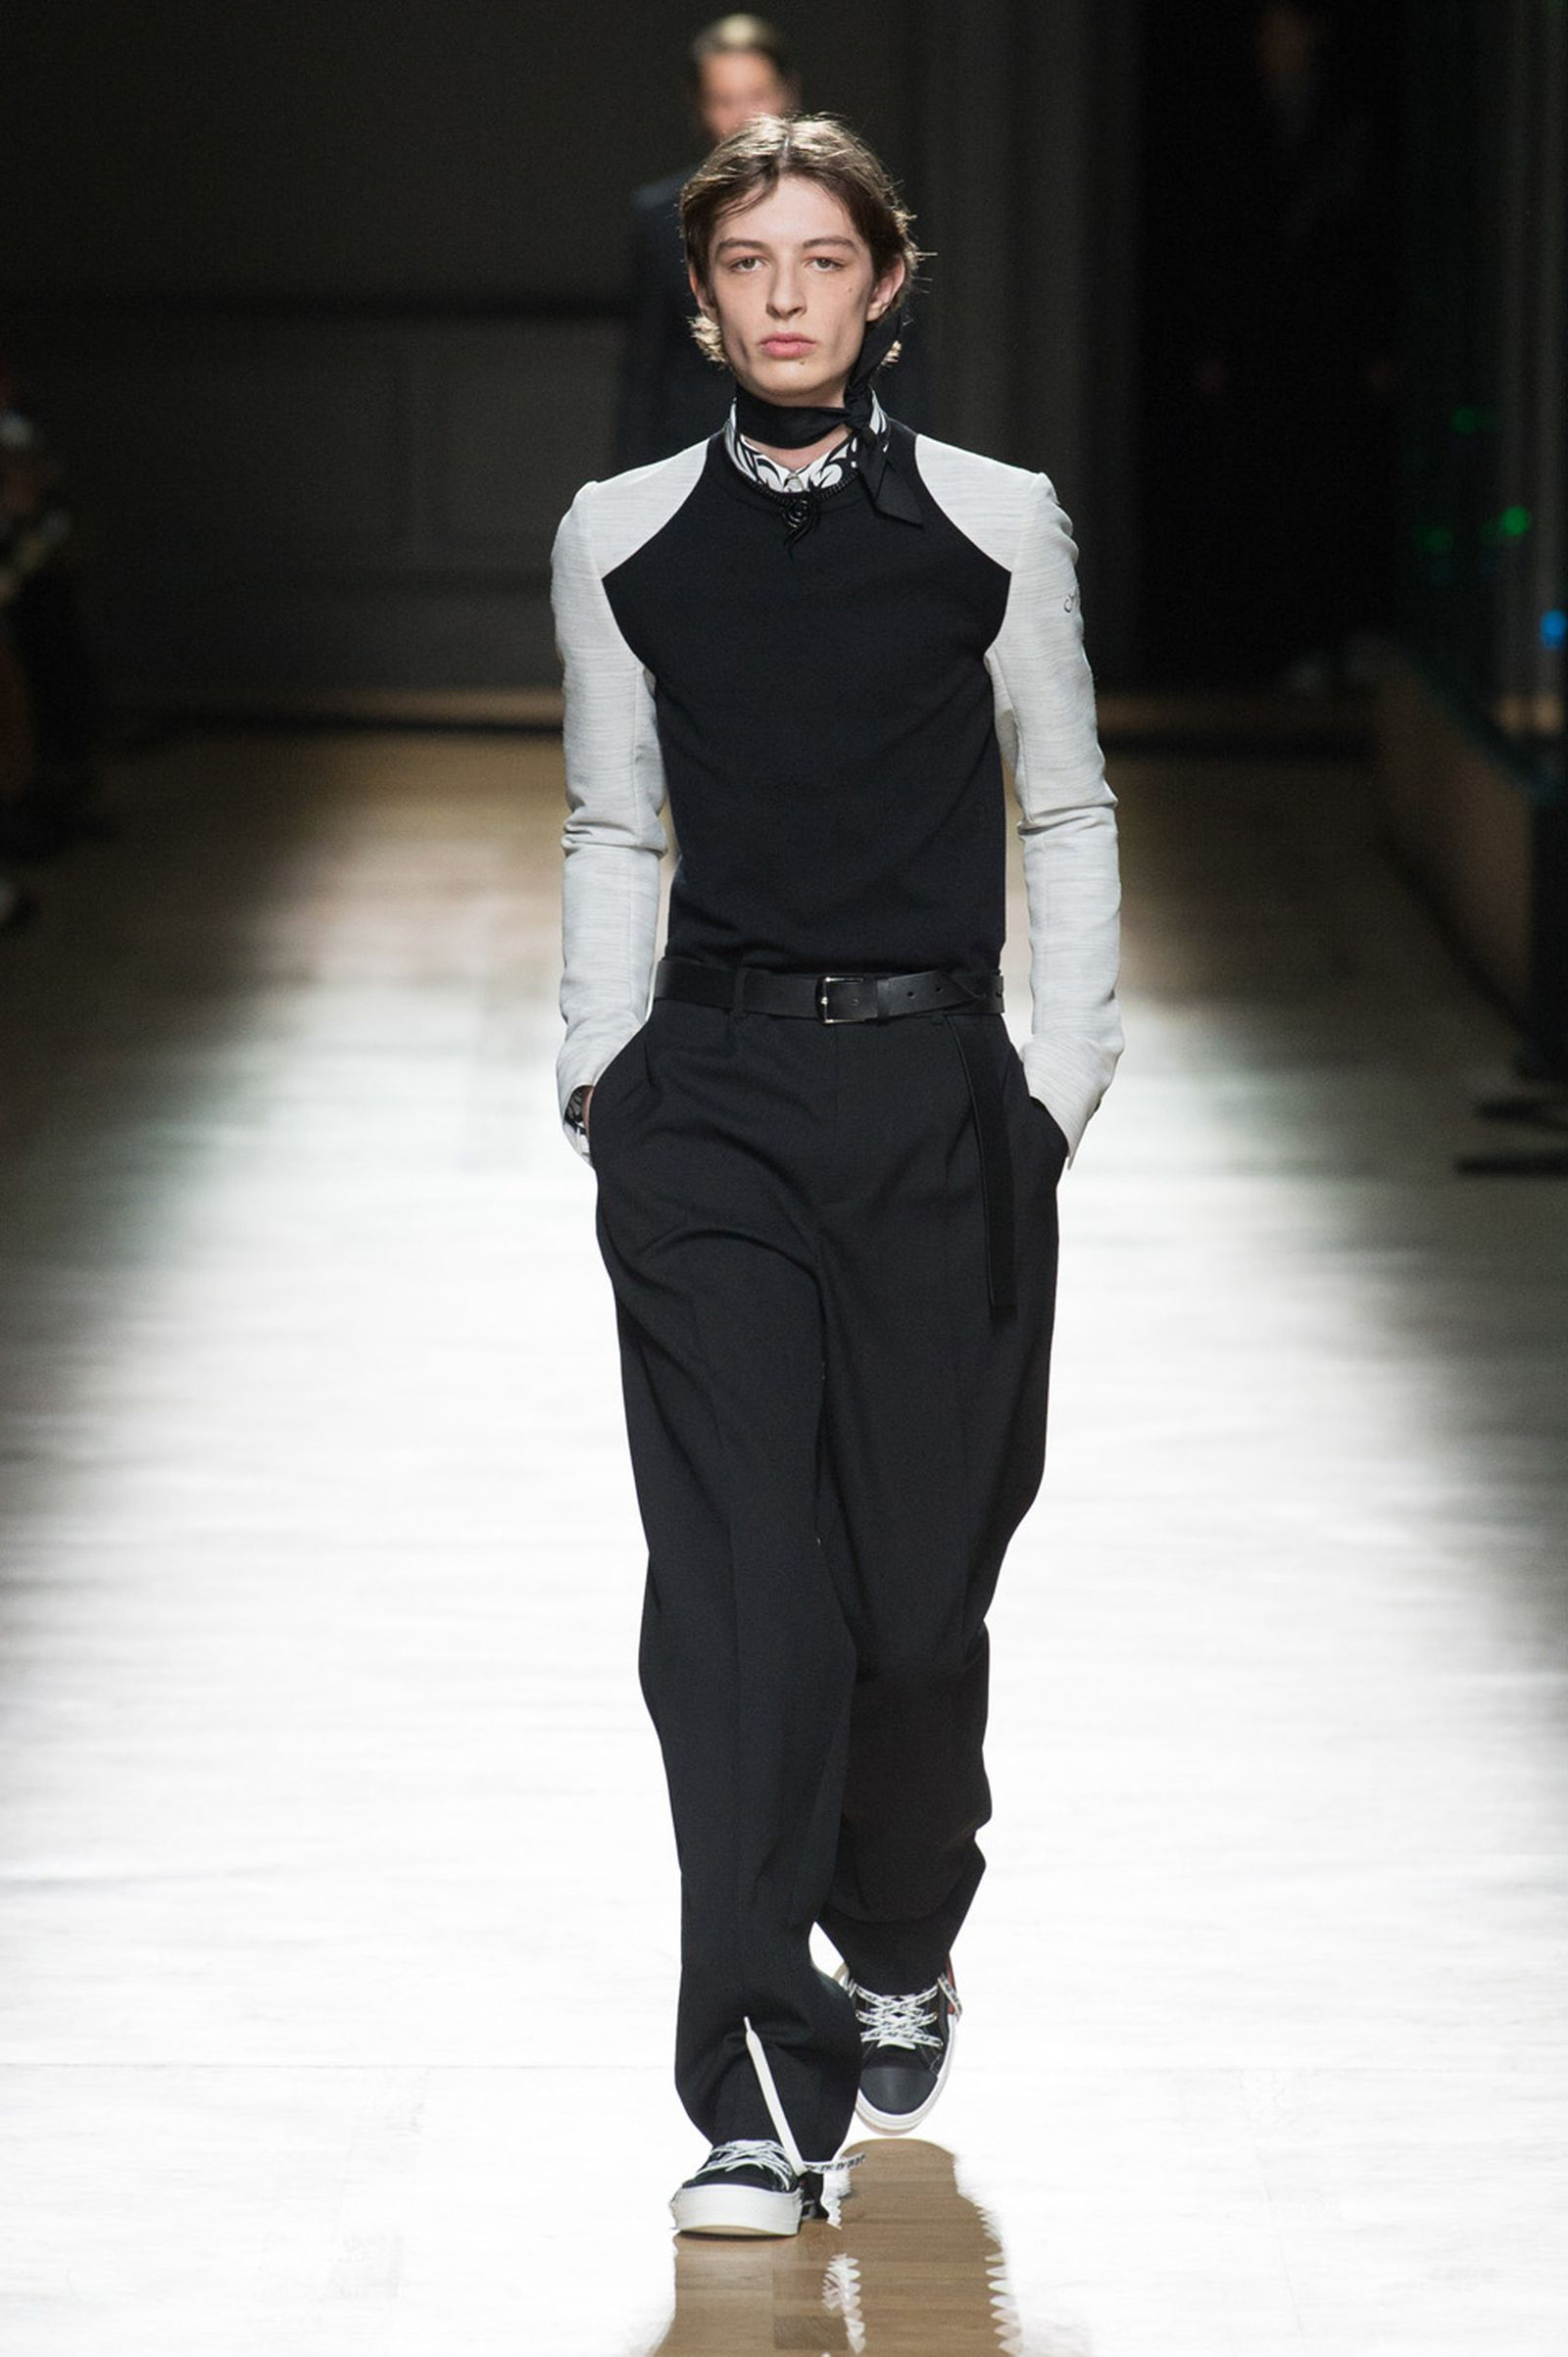 DIOR HOMME WINTER 18 19 BY PATRICE STABLE look08 Fall/WInter 2018 runway